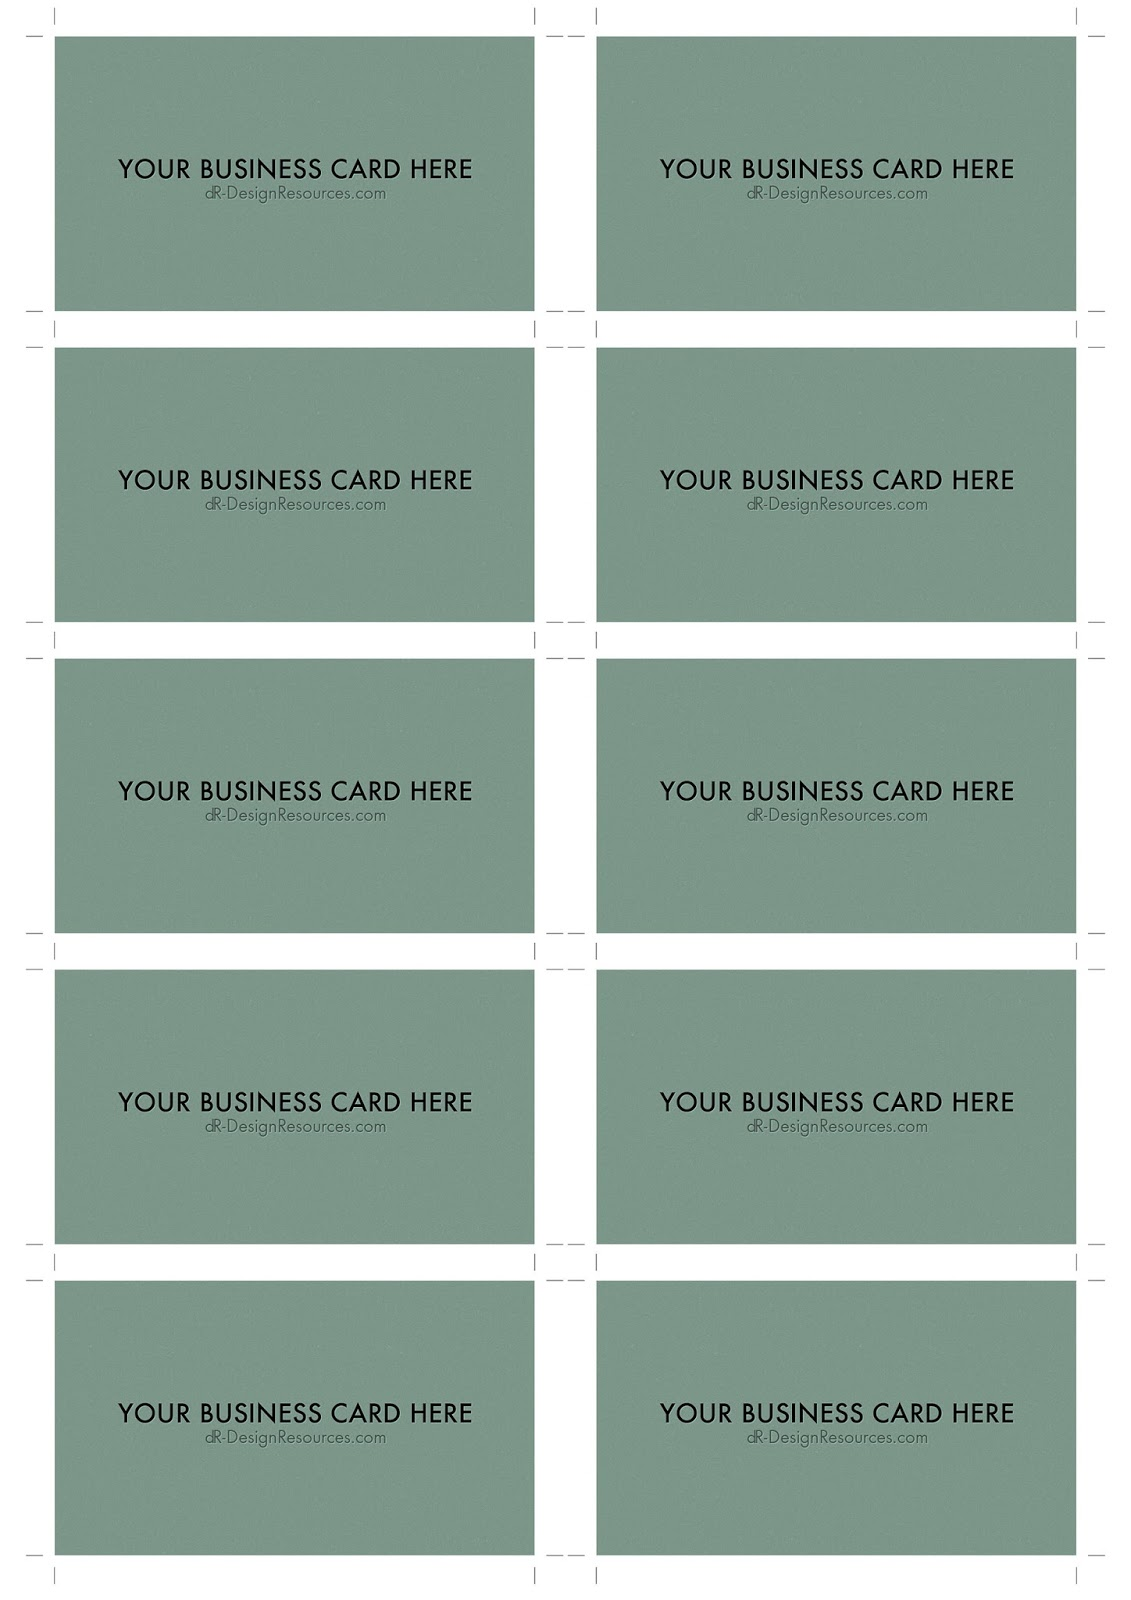 Business card template a4 idealstalist business card template a4 free photoshop tutorials reheart